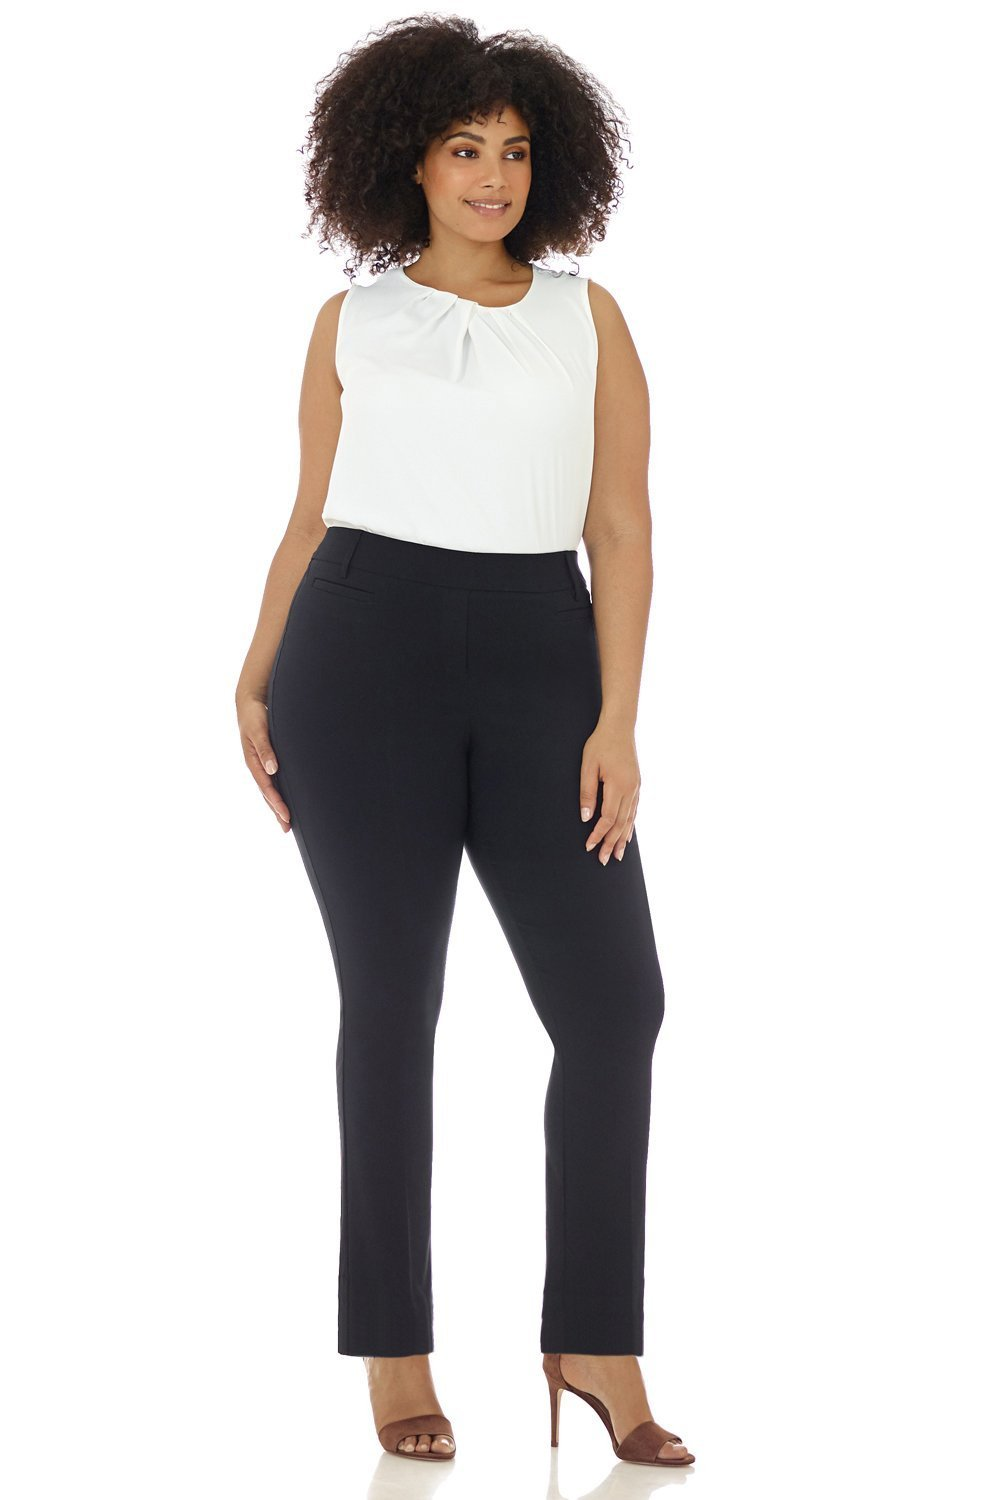 Rekucci Curvy Woman Ease in to Comfort Straight Leg Plus Size Pant w/Tummy Control (18W,Black) by Rekucci (Image #1)